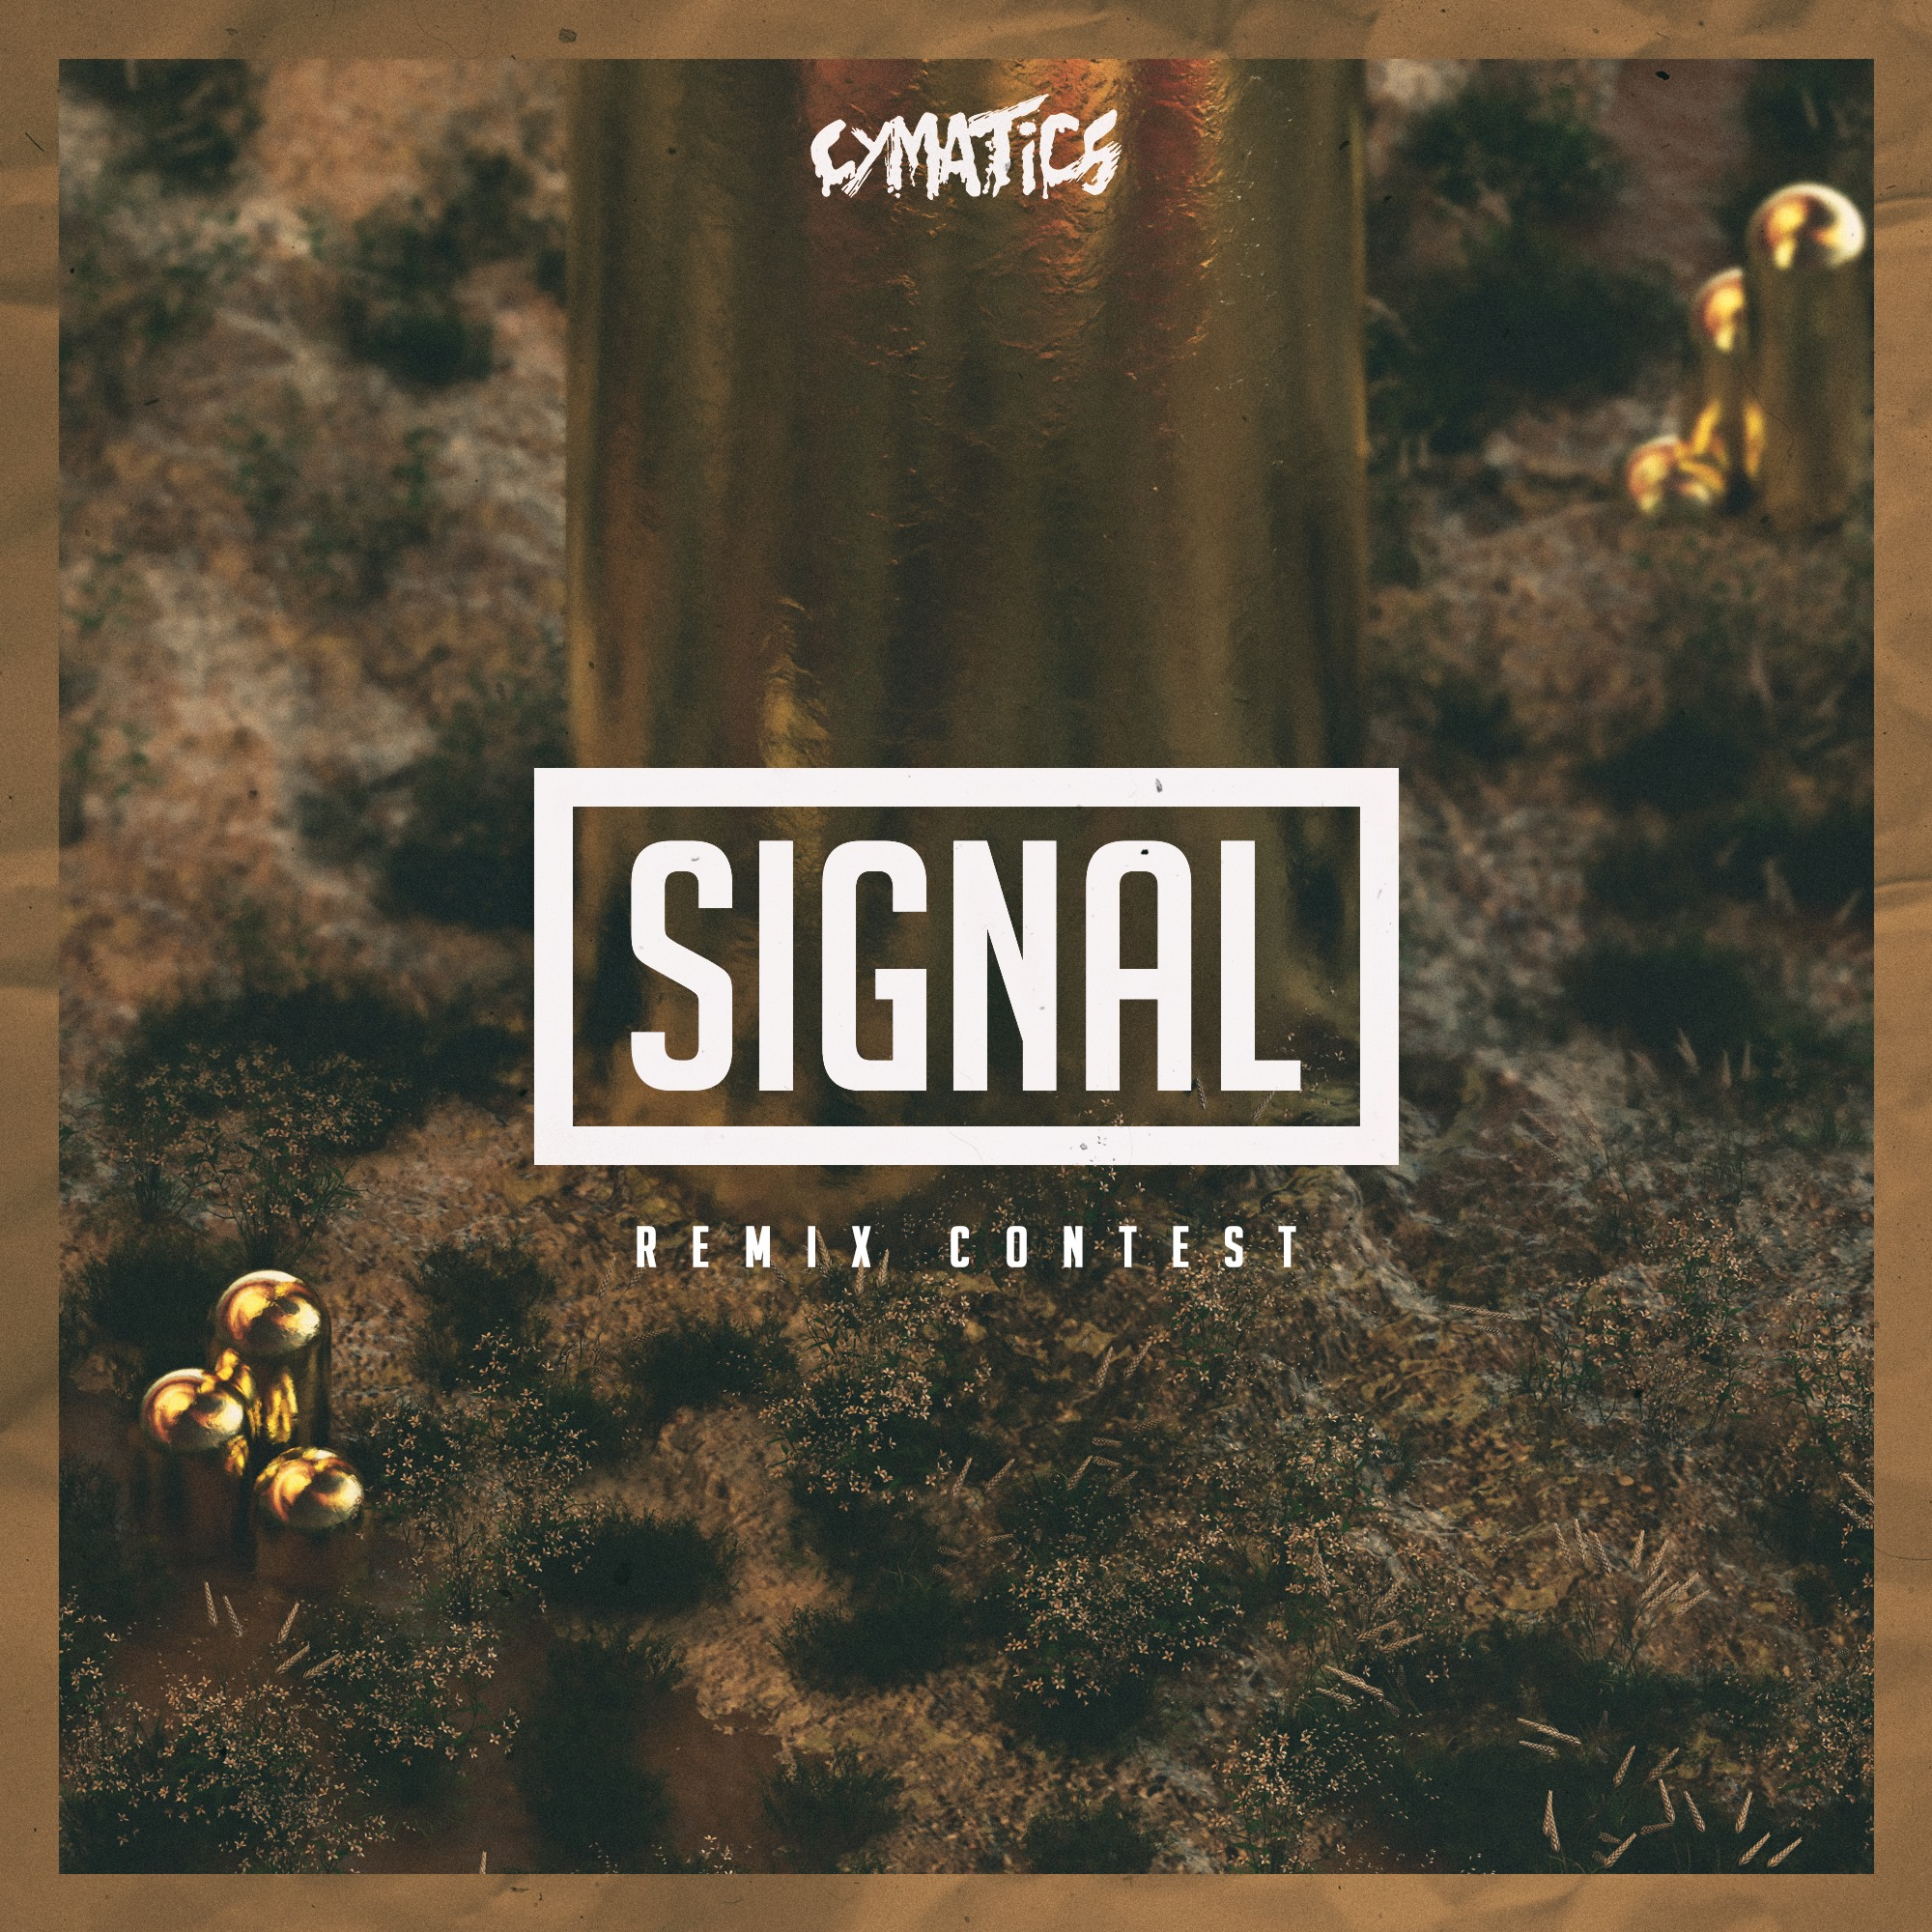 Cymatics are hosting a remix contest with AMAZING prizes! | Your EDM